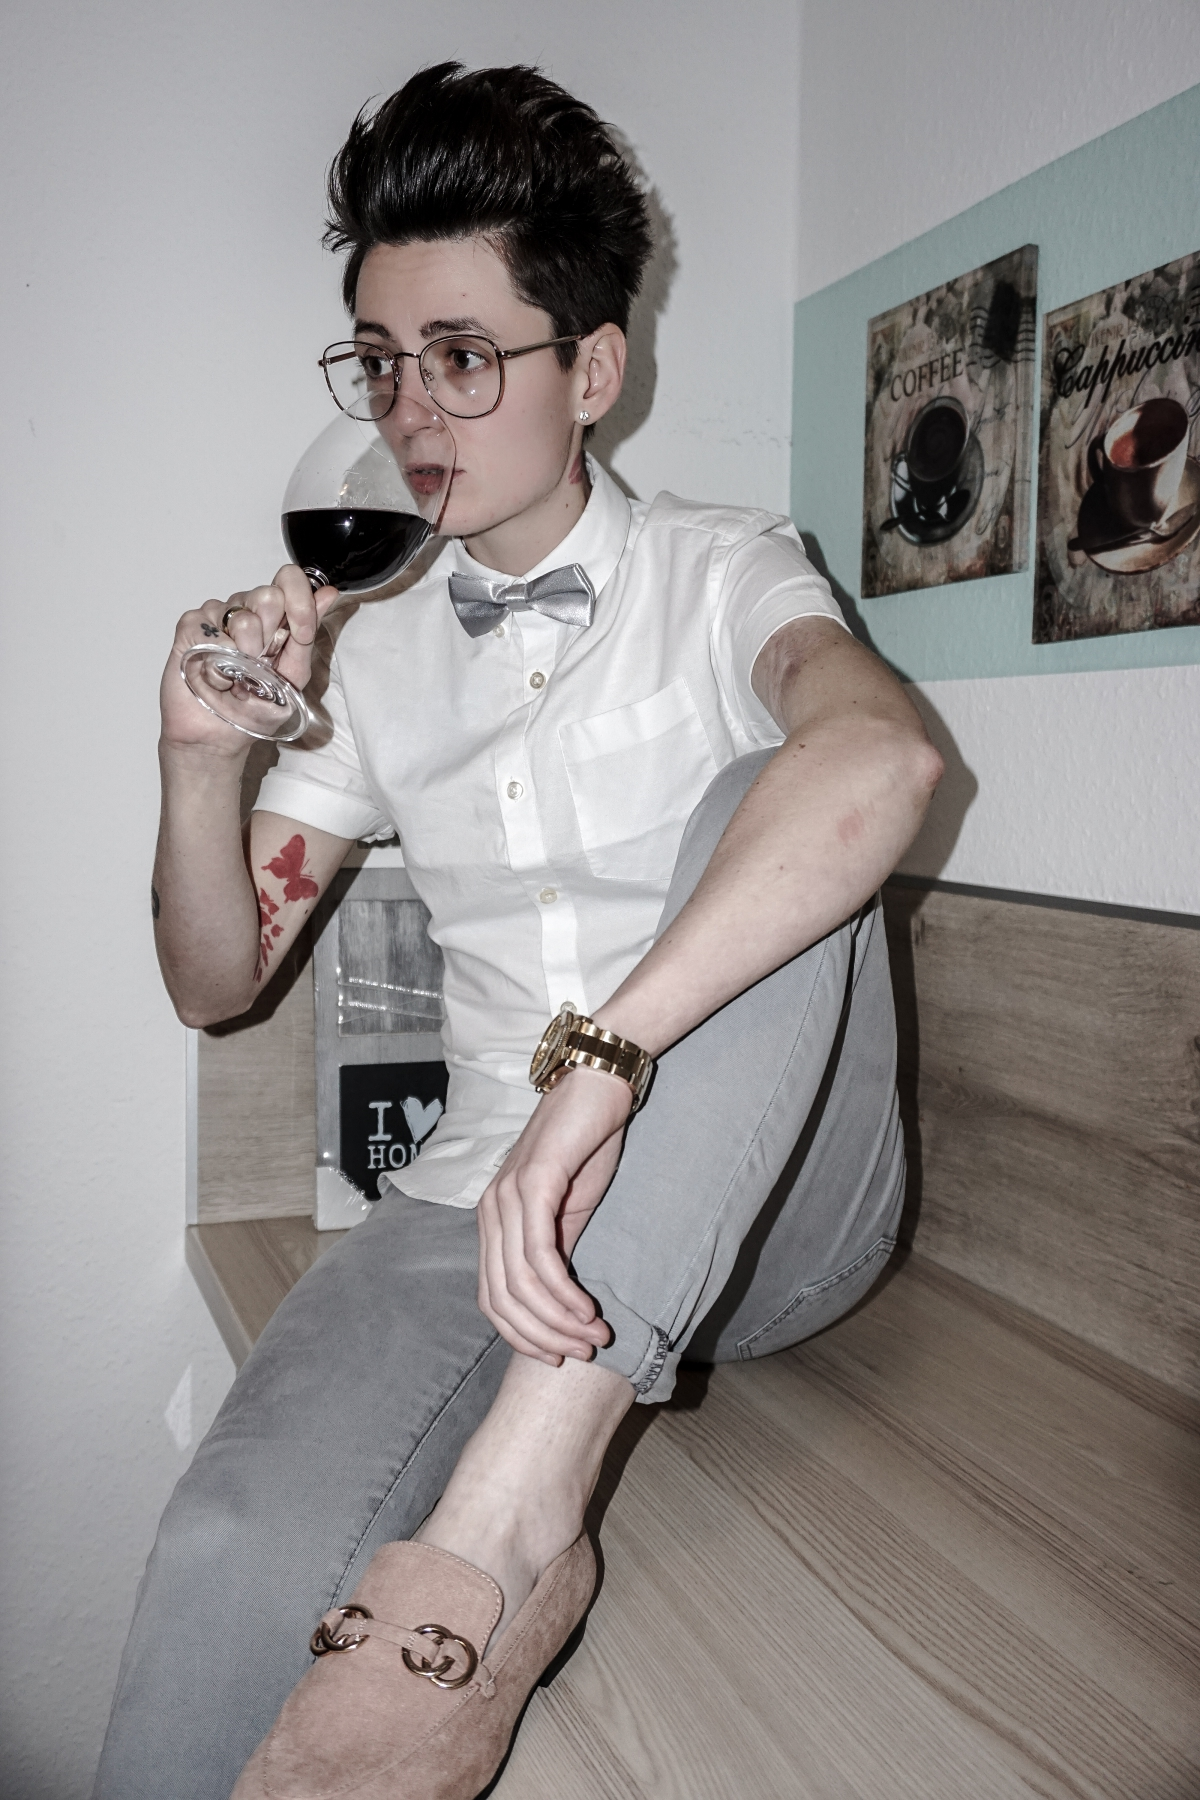 androgynous dapper style